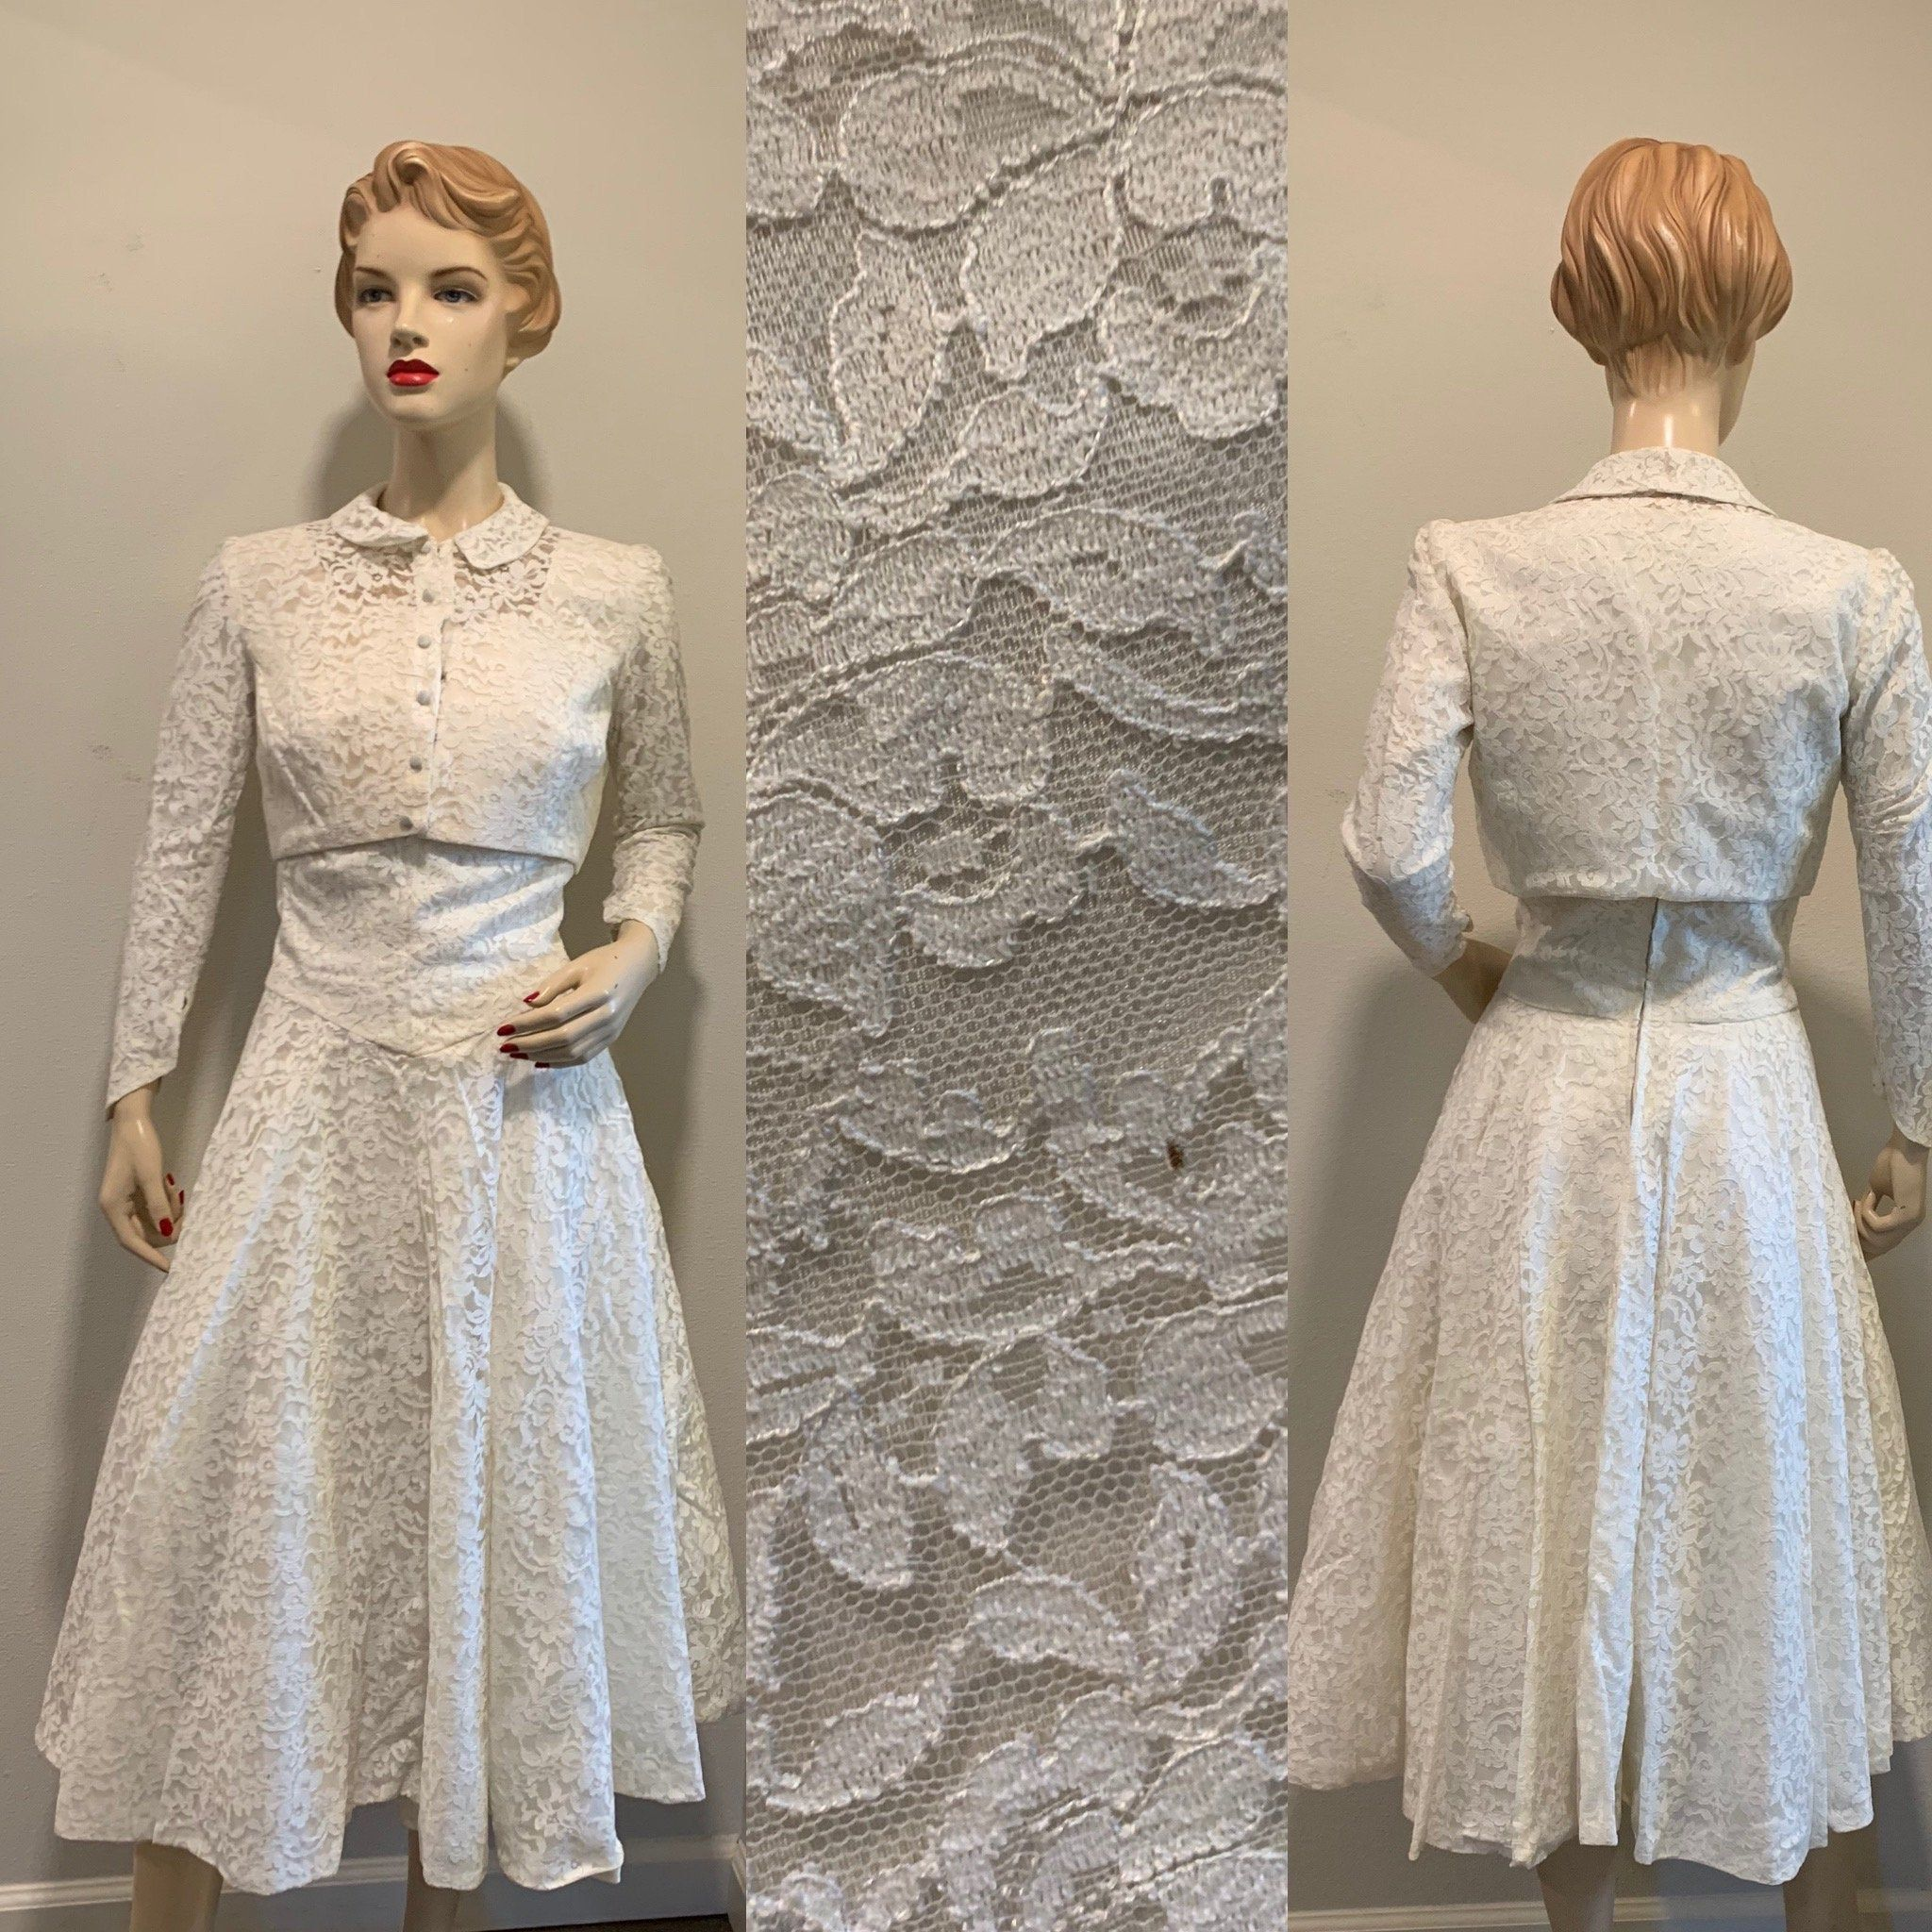 Sleeveless Mid Length Pointed Sleeves Jacket Great Quality And Condition Vintage 1950s Off White Wedding Dress ~ With Bolero Style Button